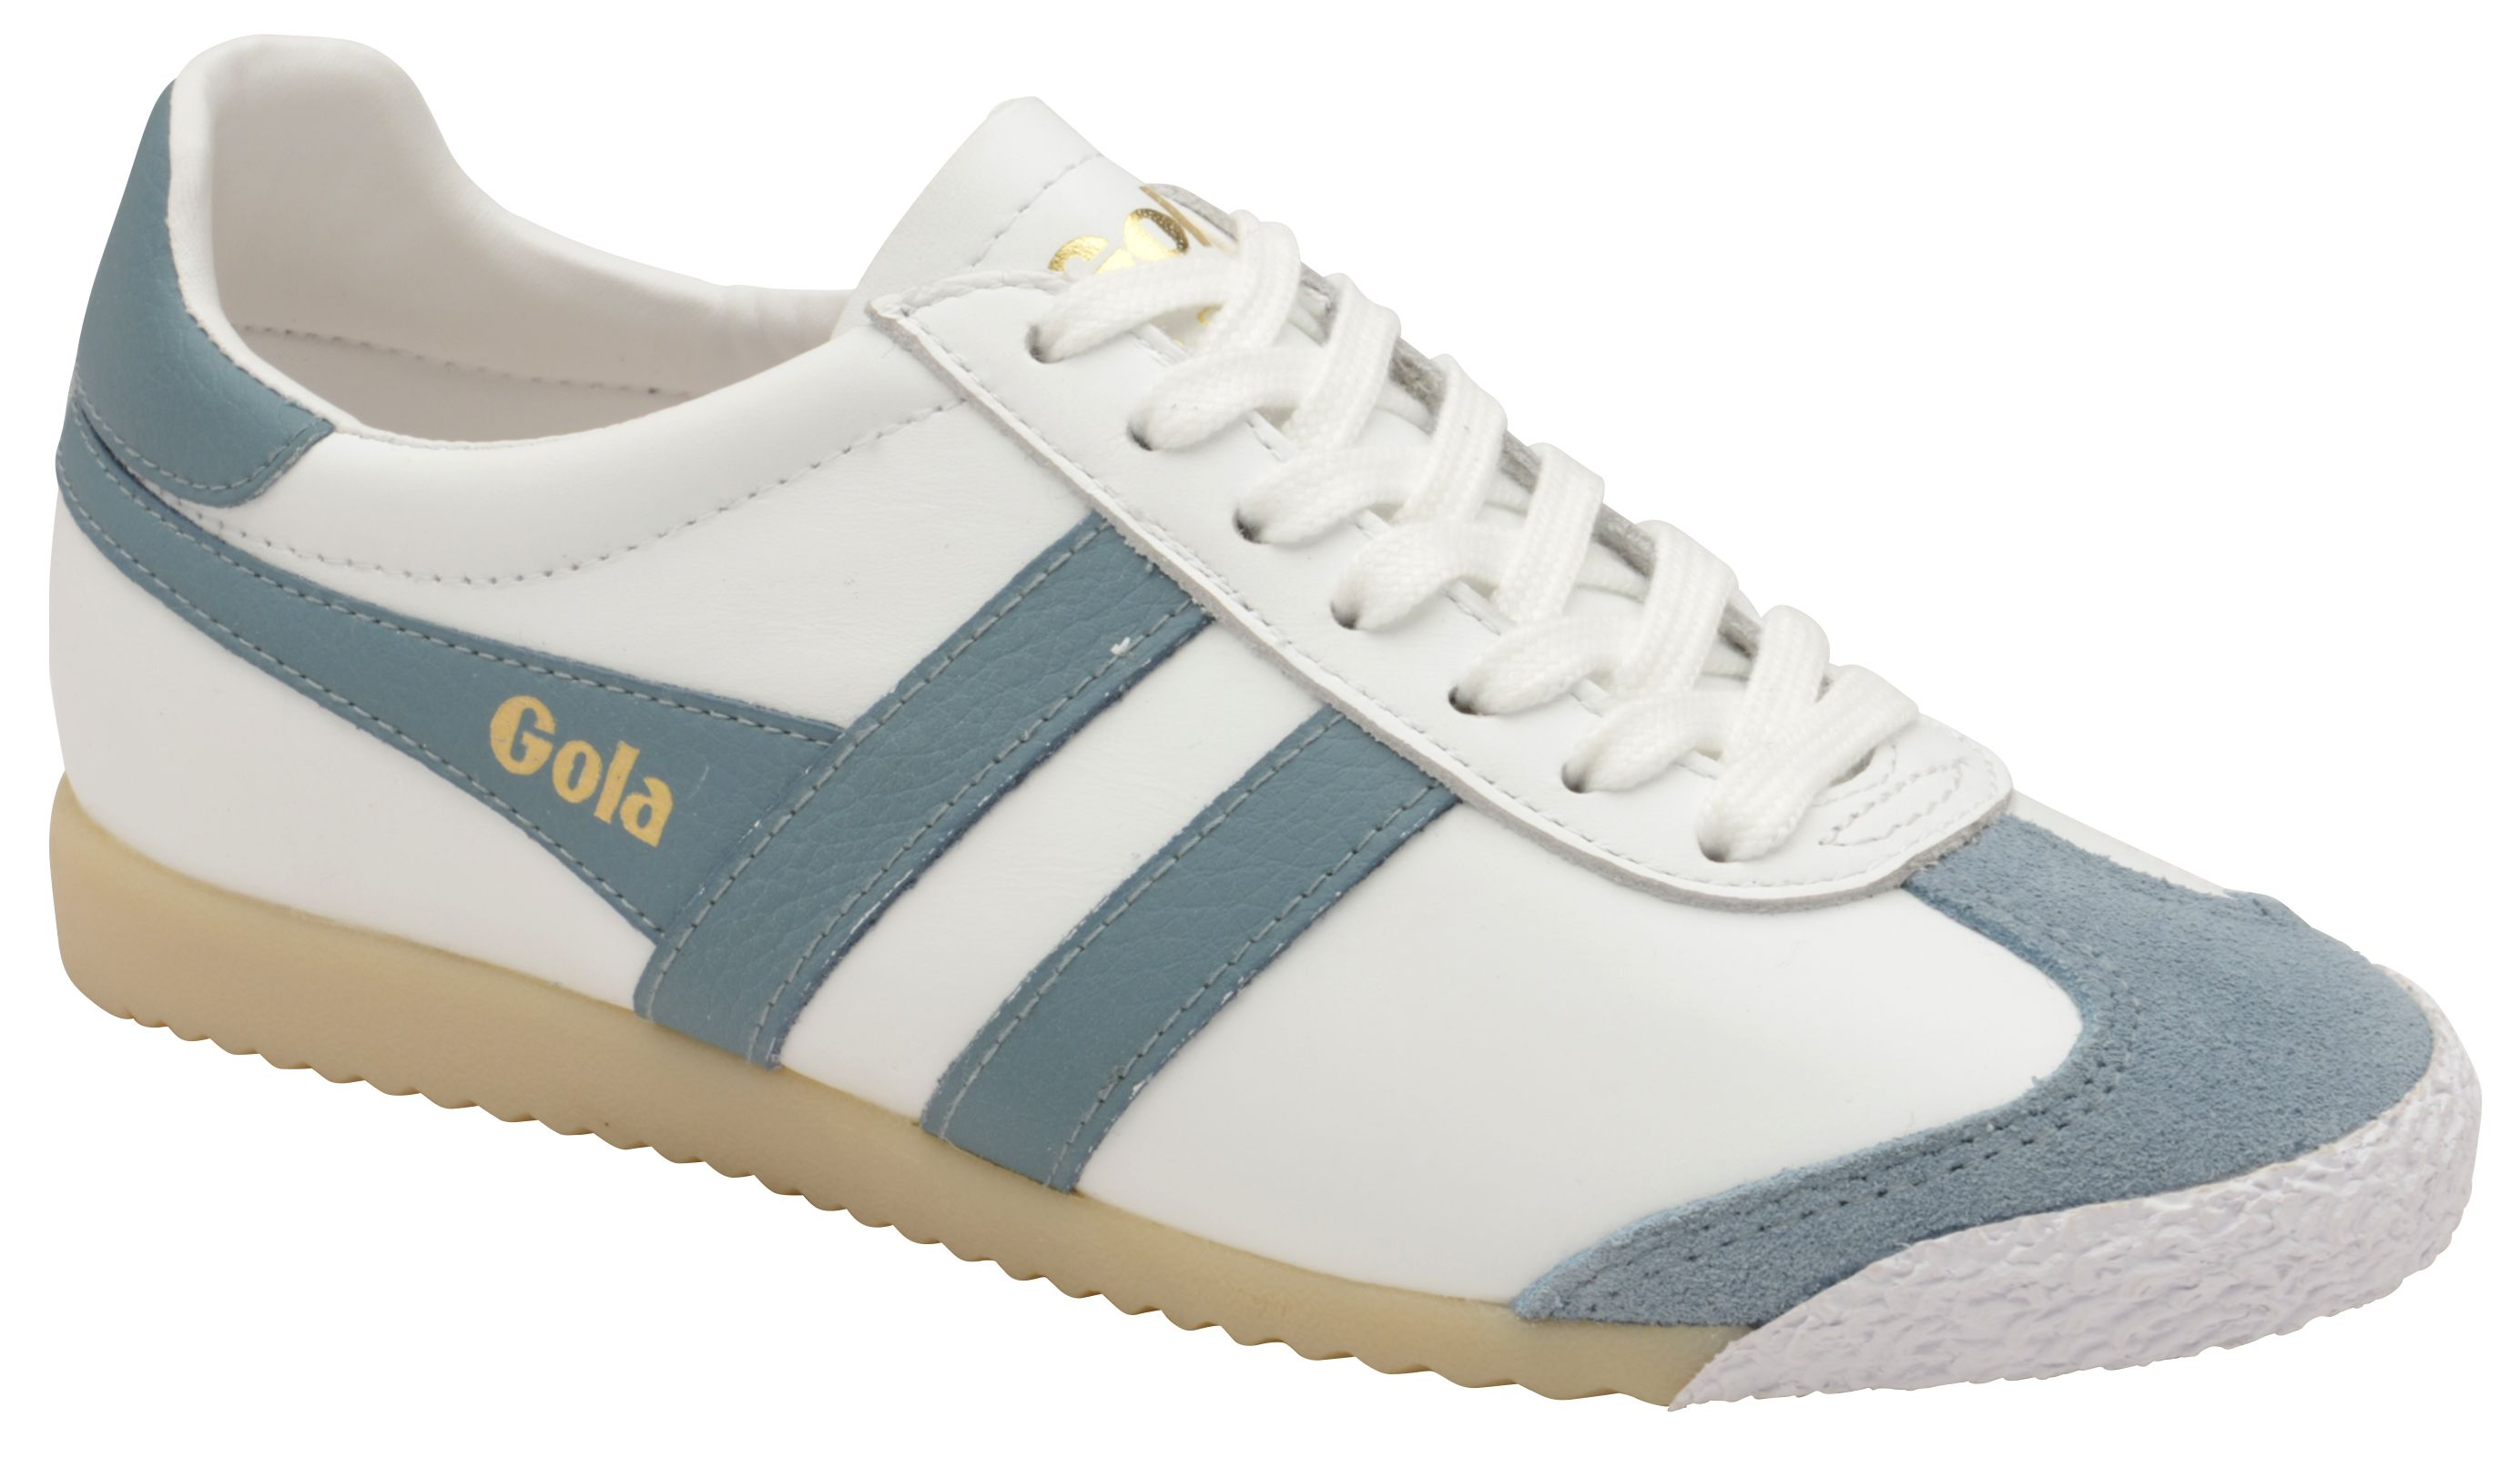 Gola Harrier 50 Leather Lace Up Trainers, Snow